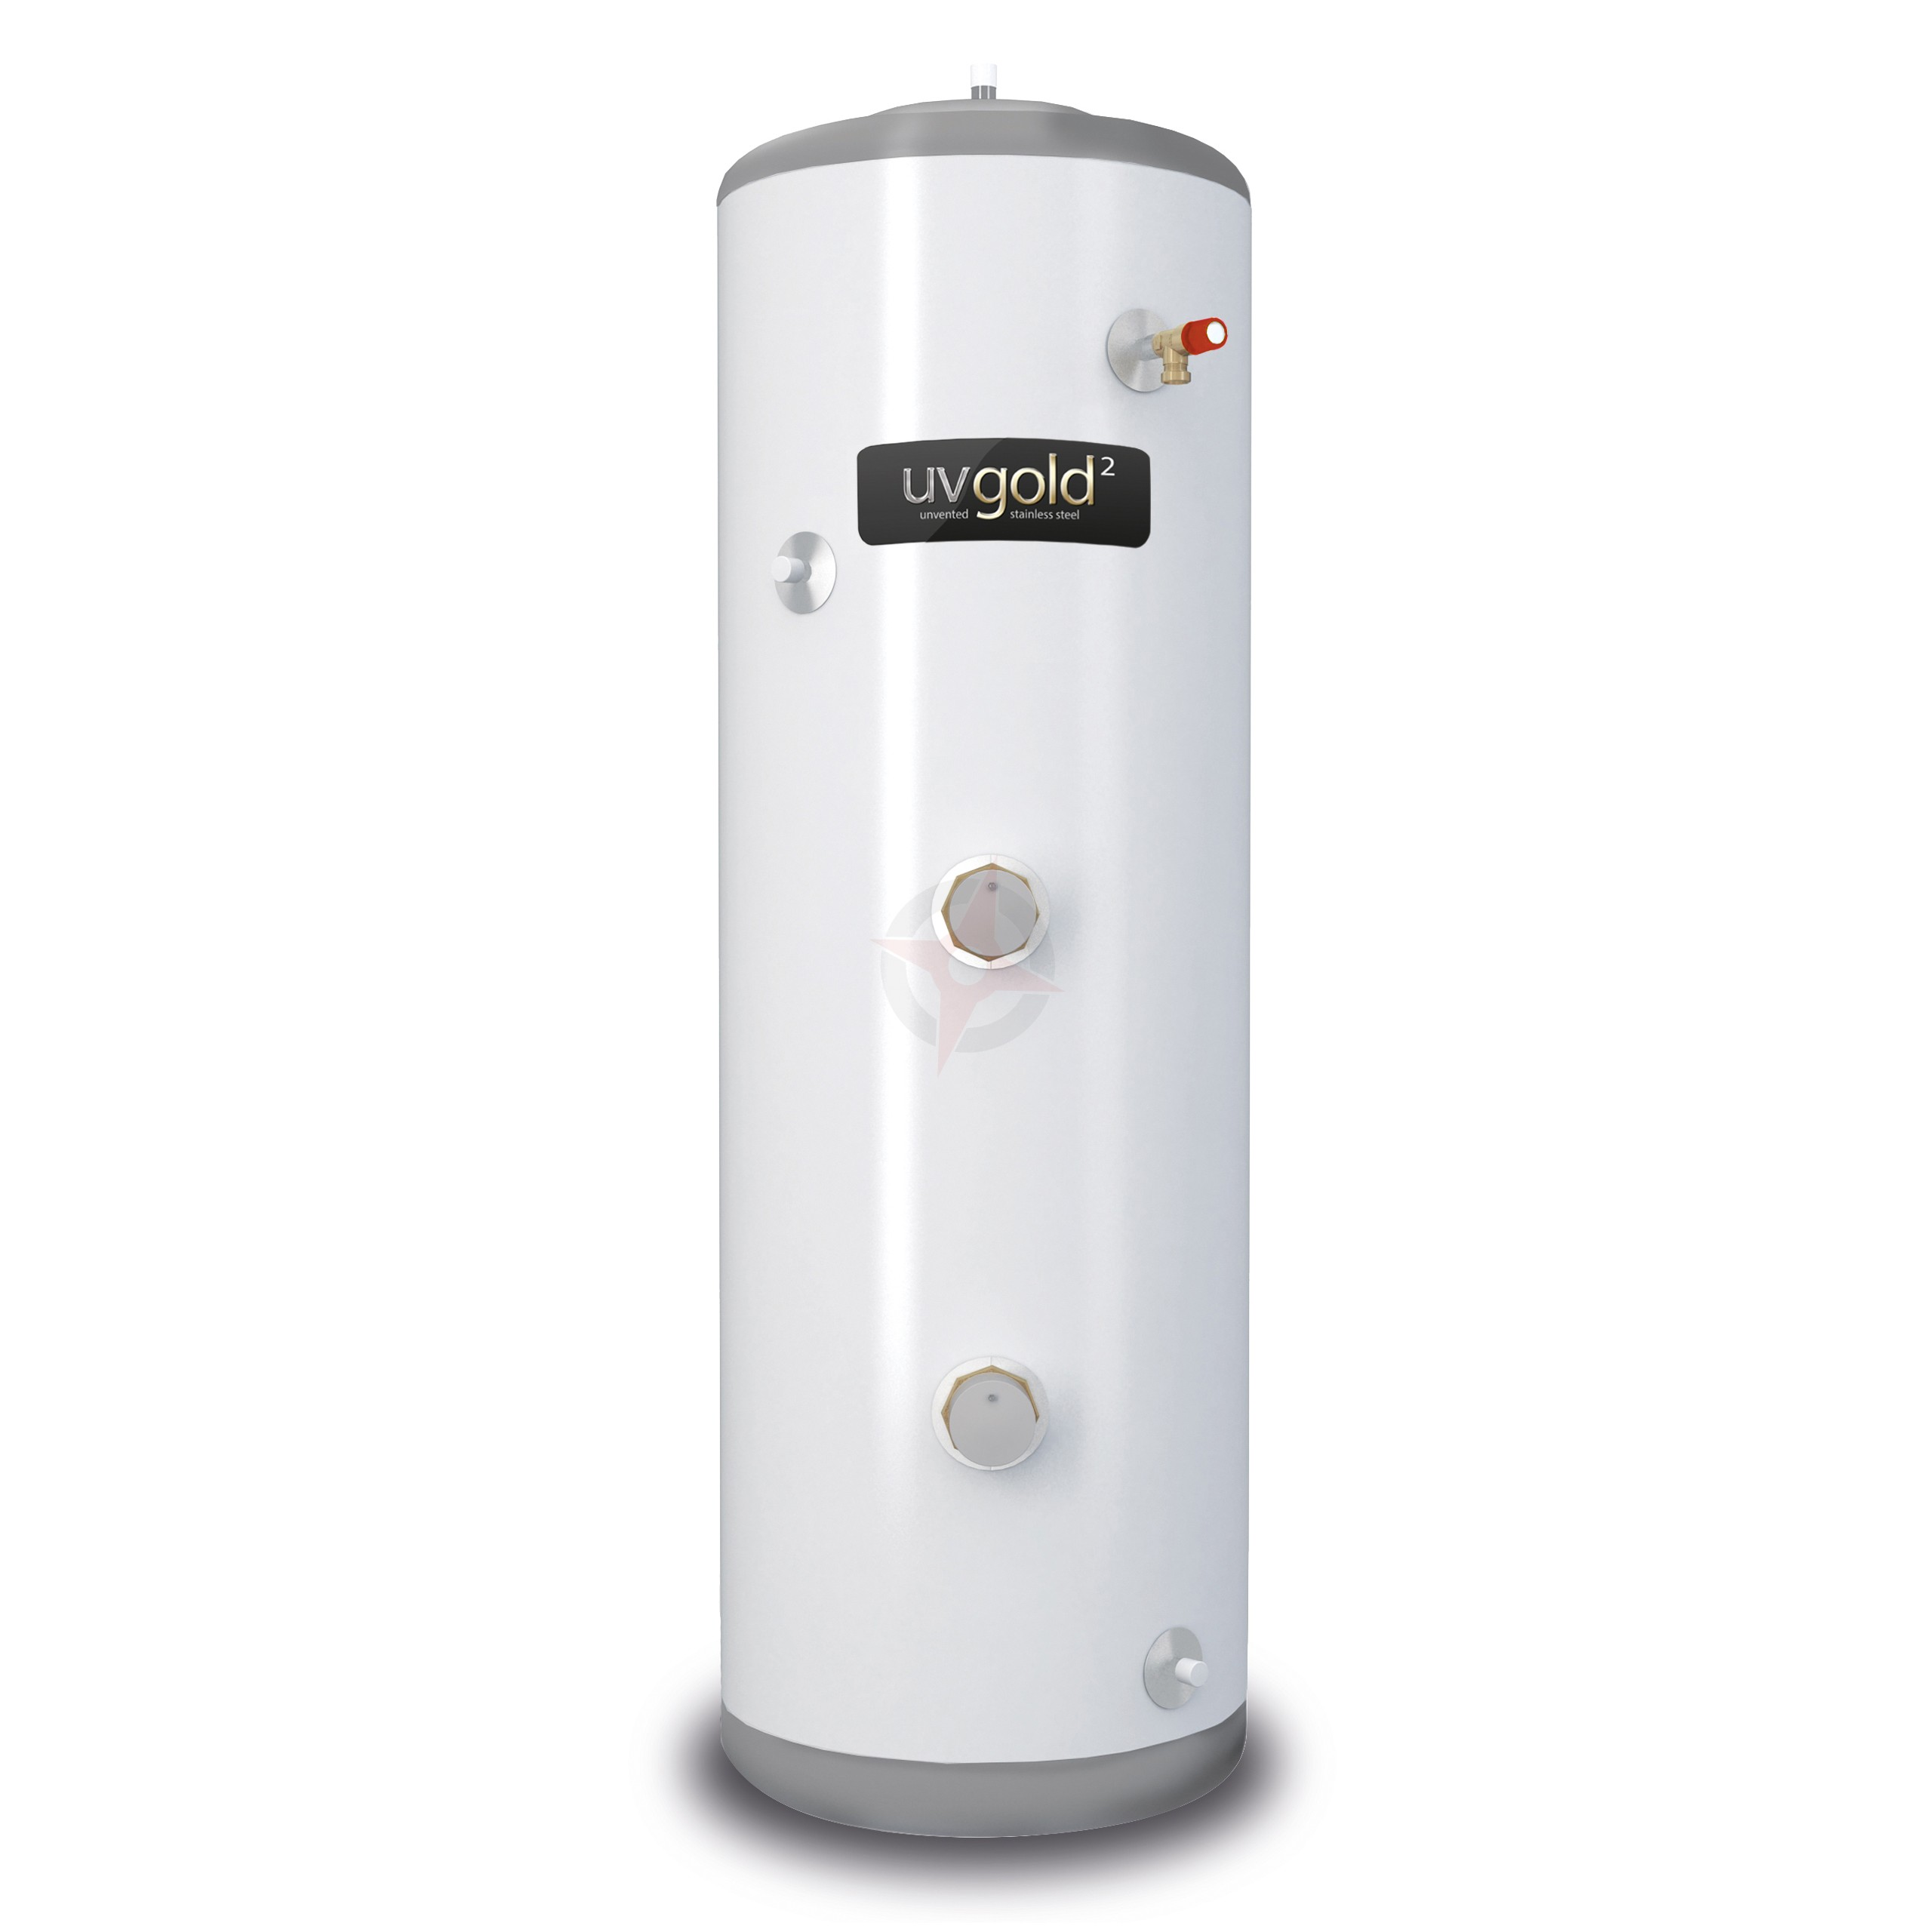 uvgold2 250L Direct Unvented Hot Water Storage Cylinder & Kit